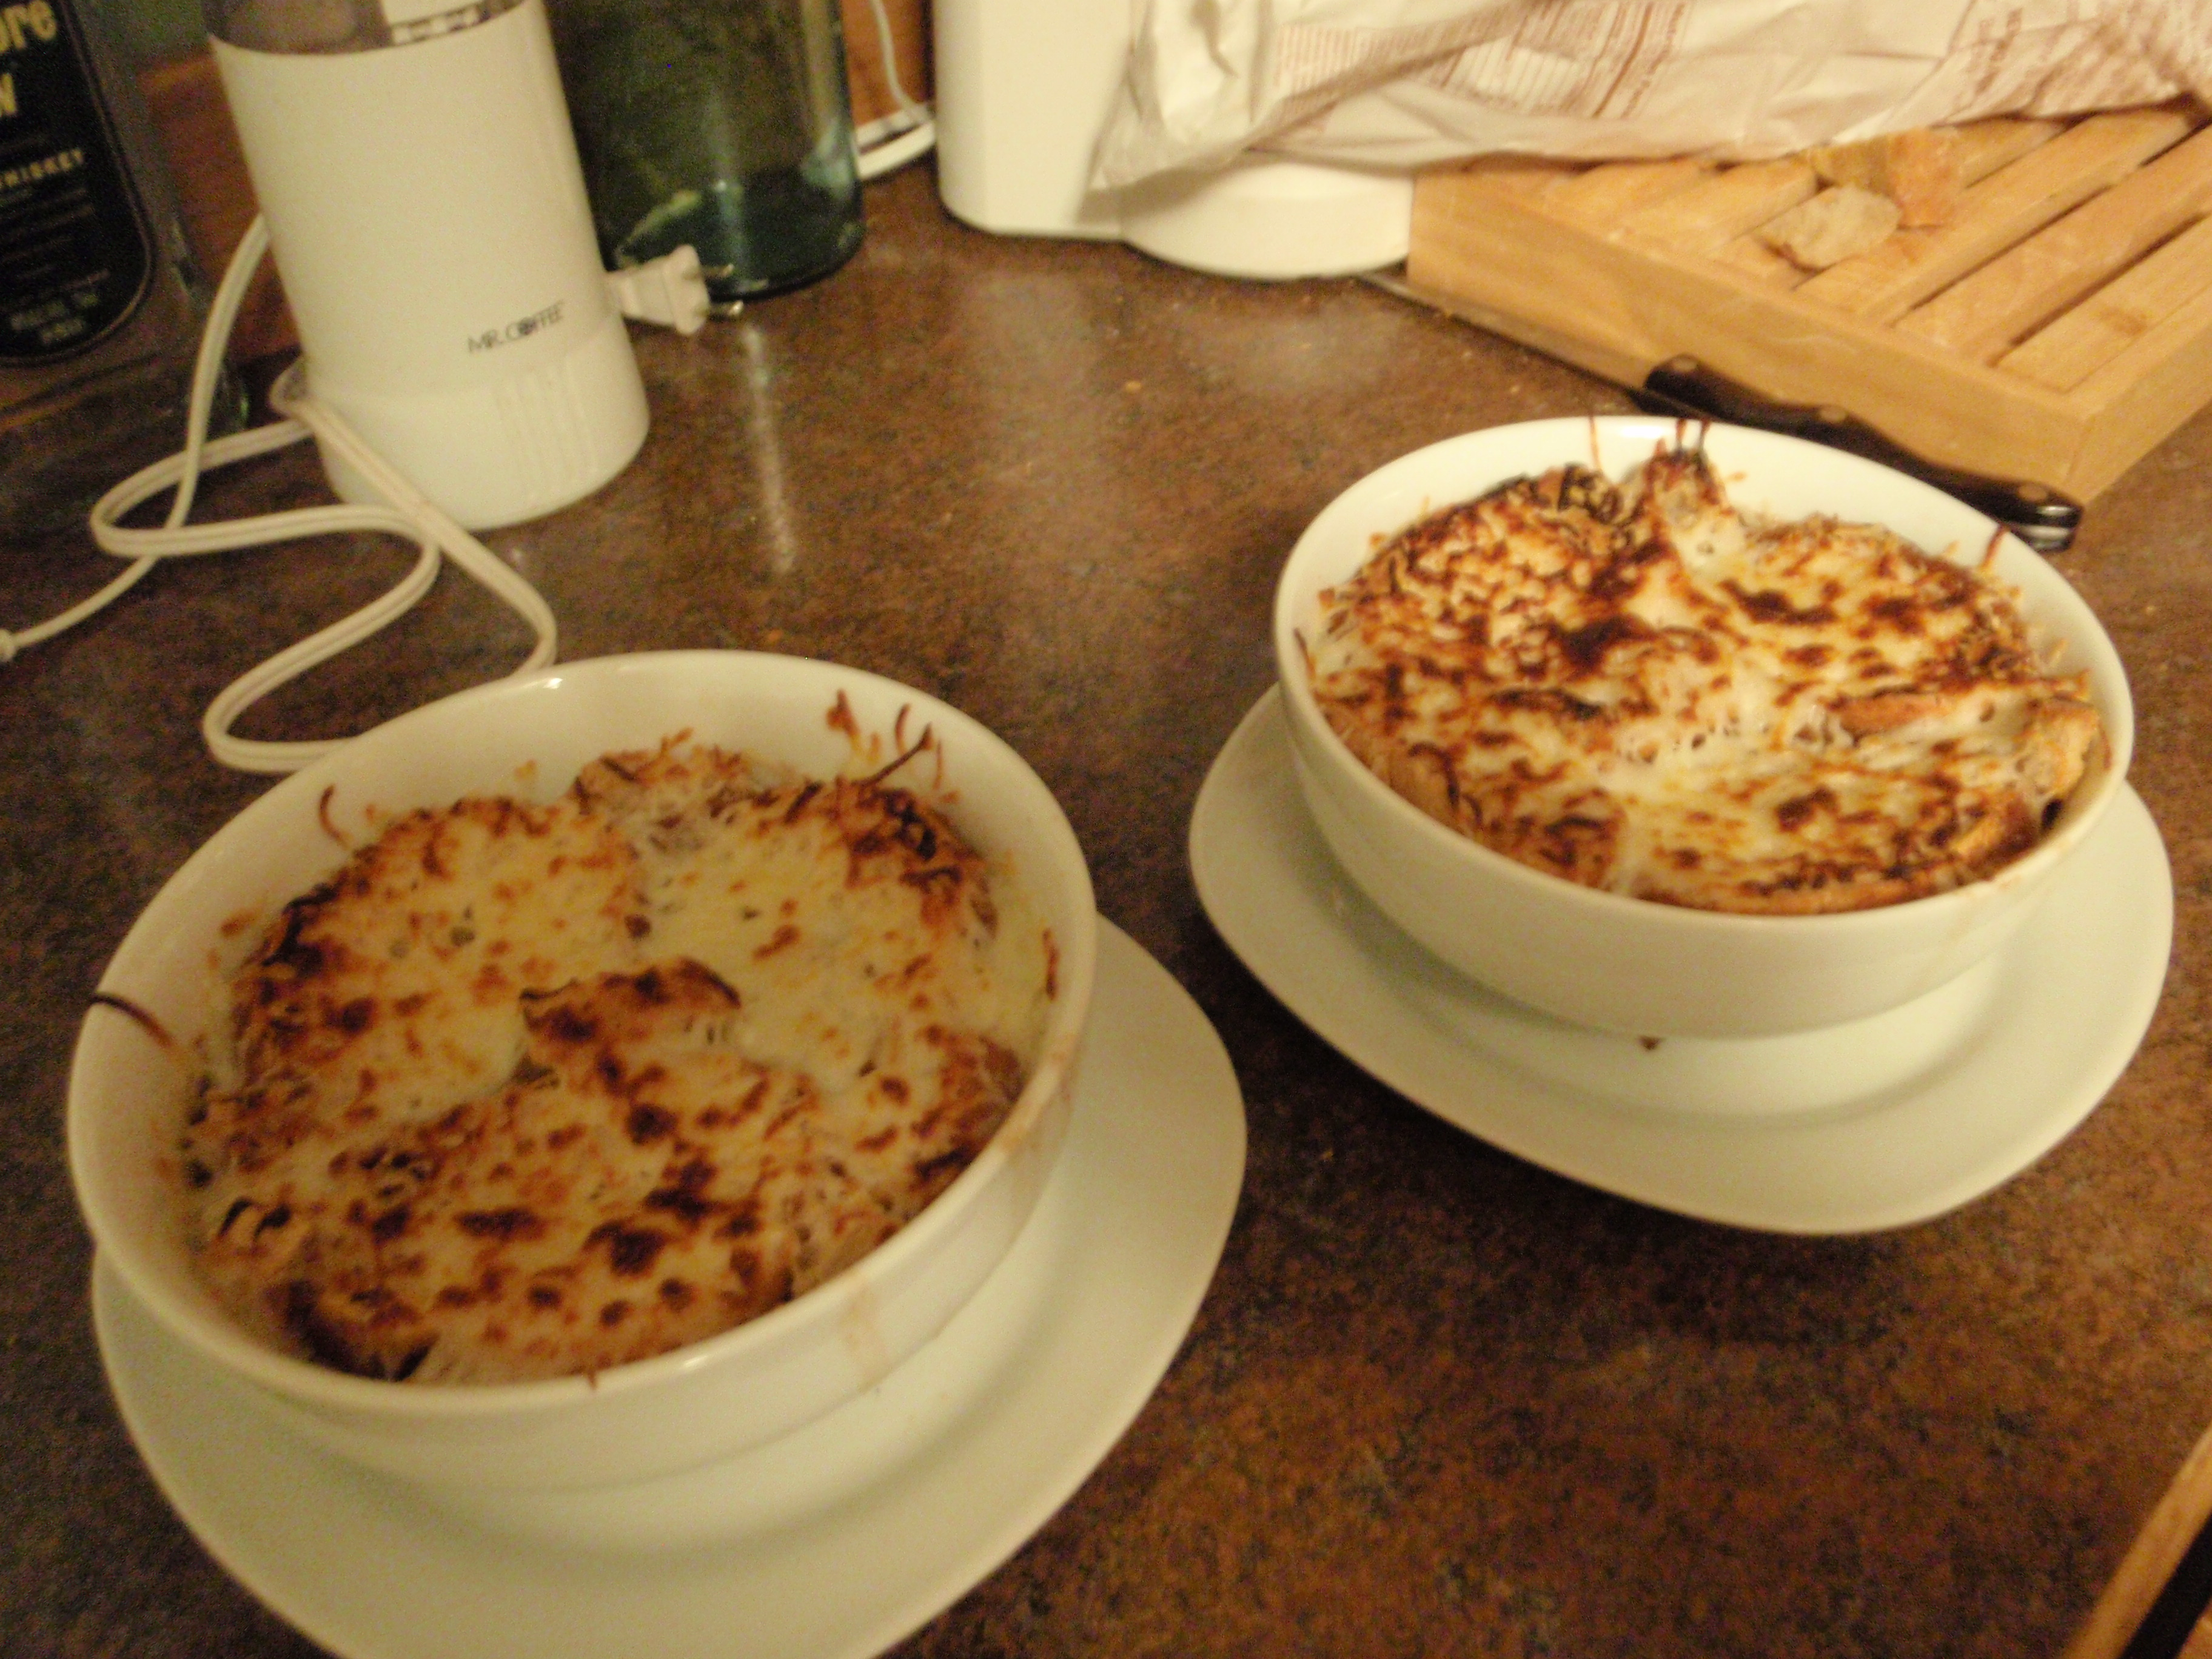 Slow French Onion Soup